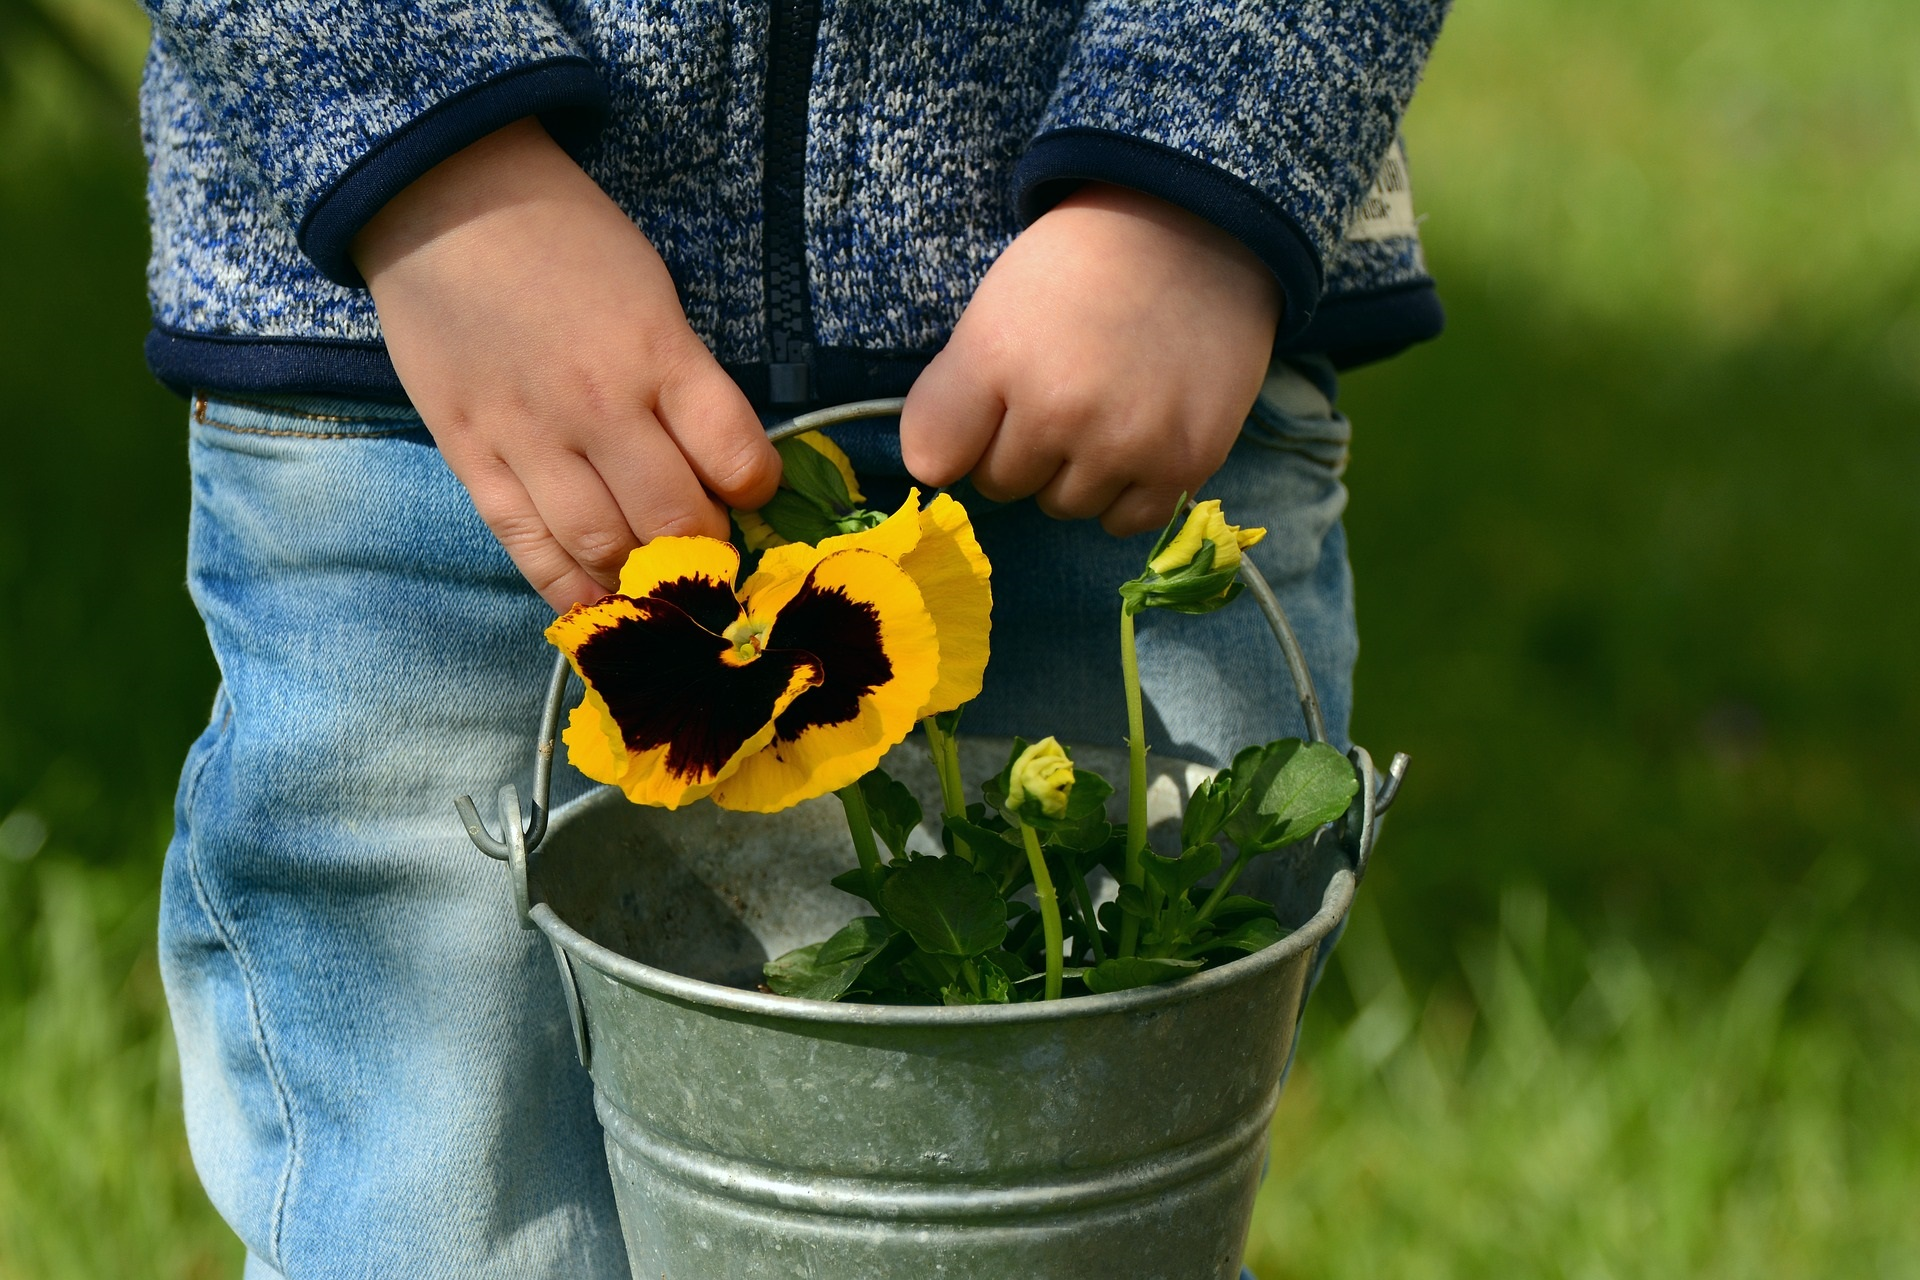 Child holding pail containing yellow flower